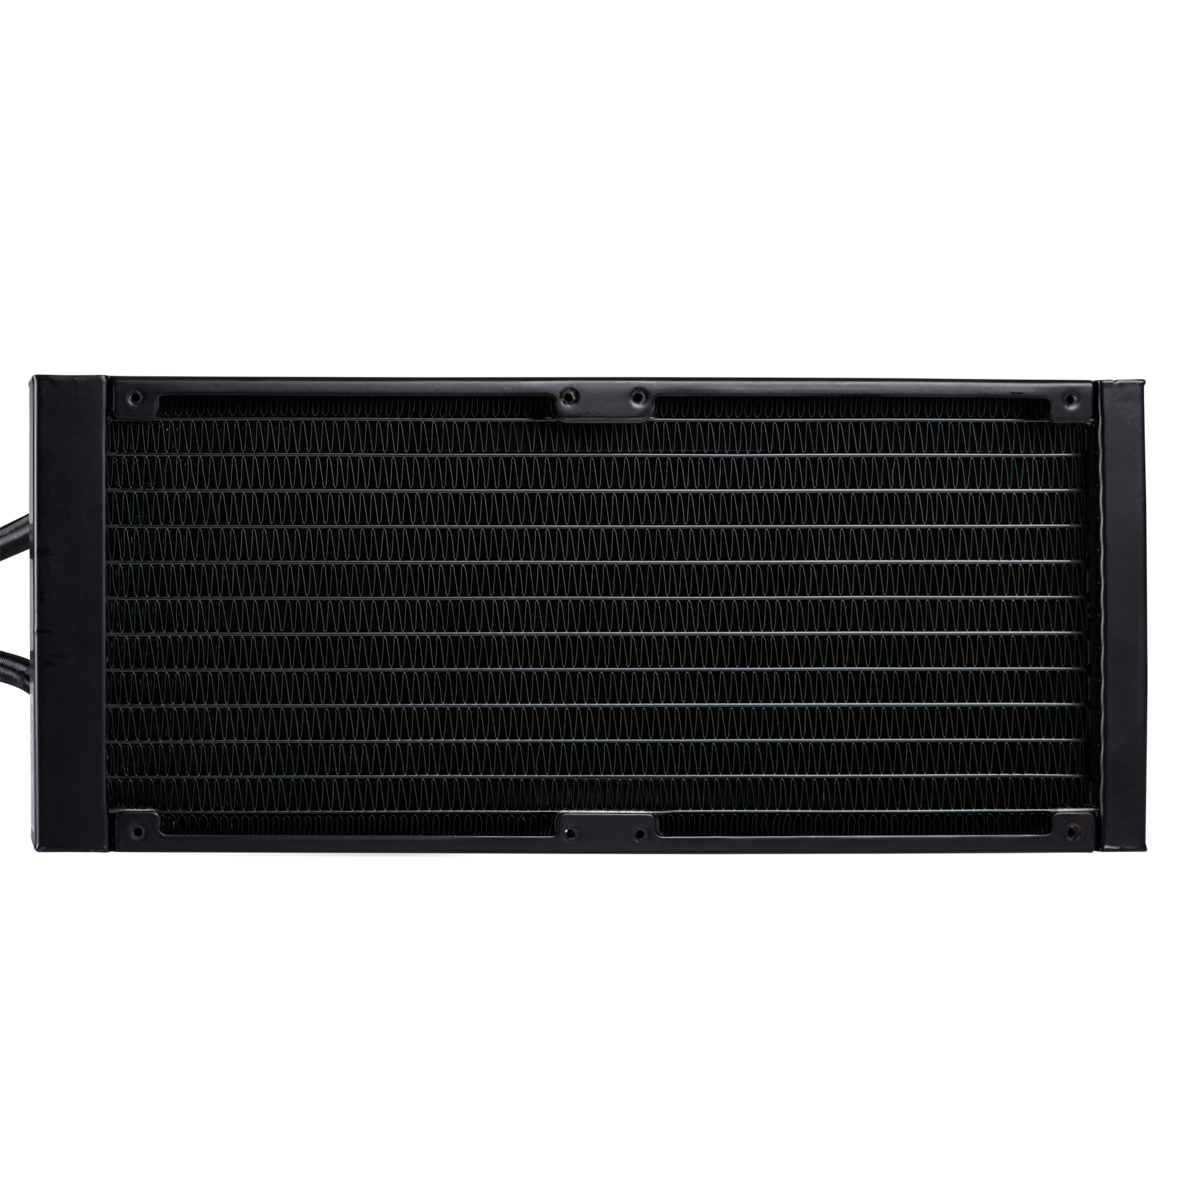 Corsair Hydro Series™ H115i PRO RGB Platinum 280mm